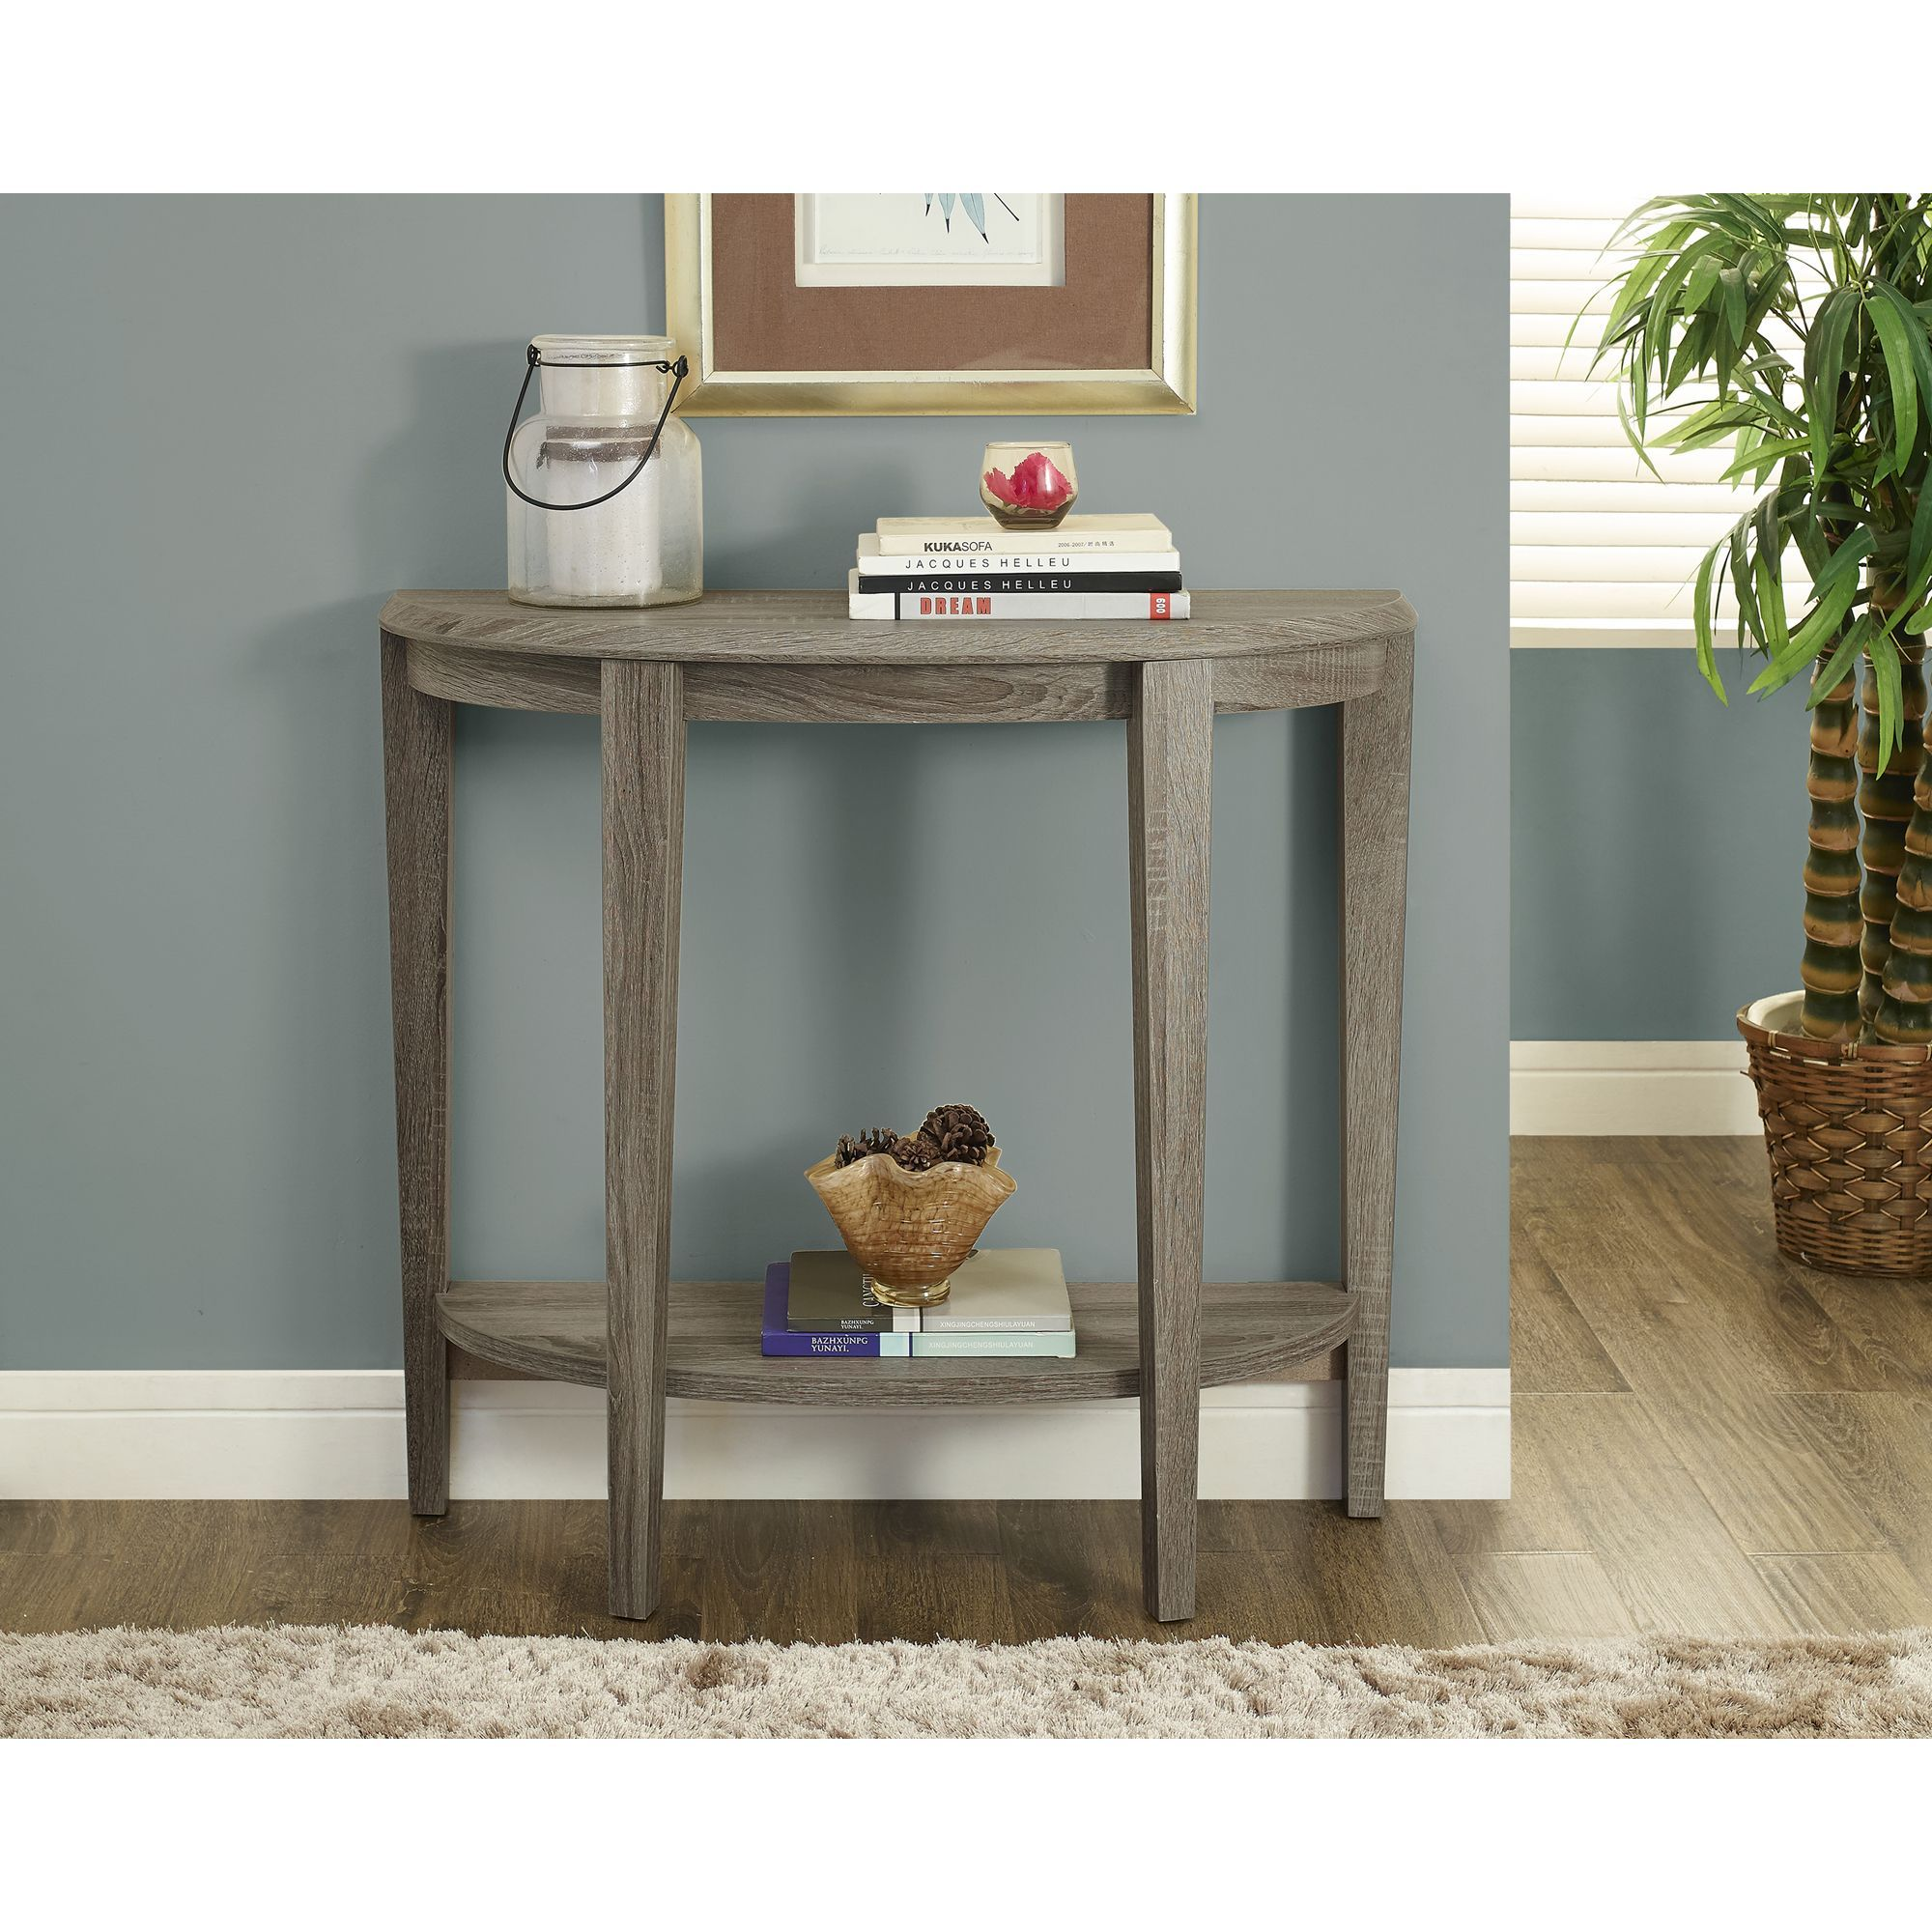 A Simple And Unique Half Moon Shape Makes This Console Table The Perfect  Addition To